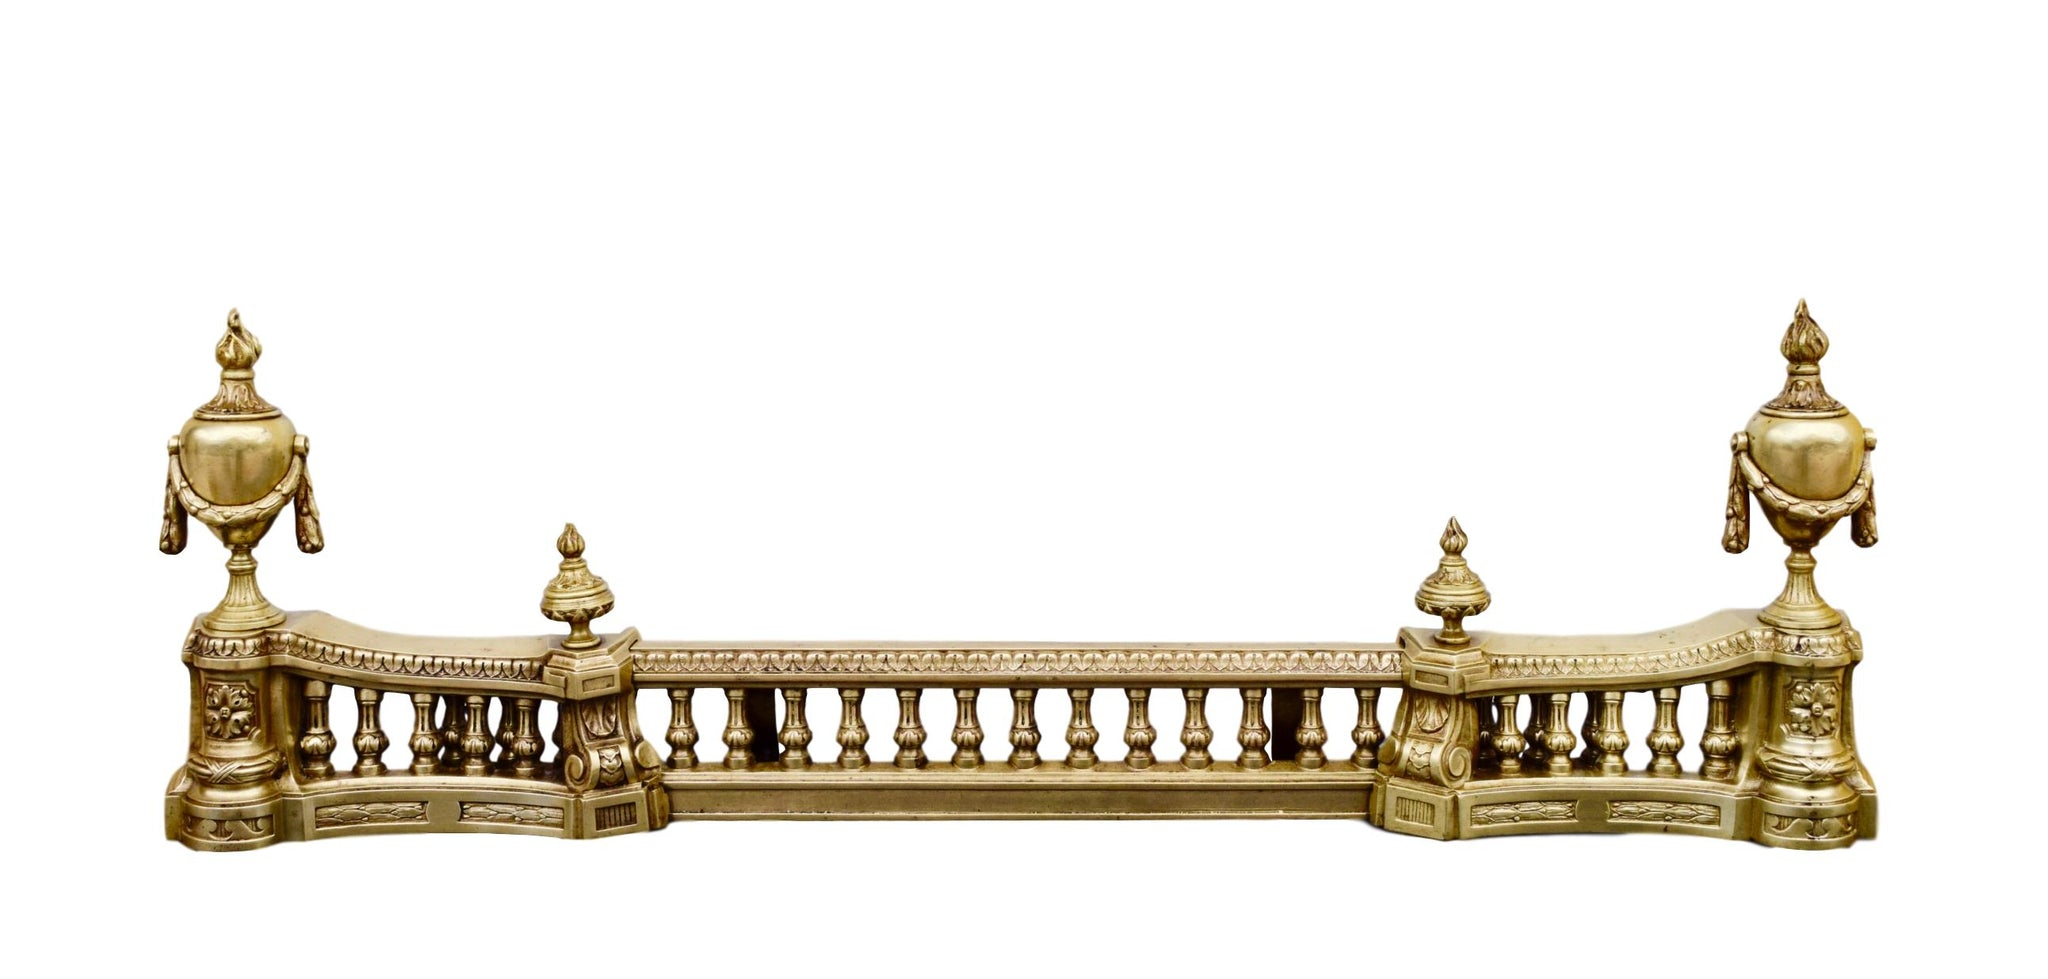 Louis XVI Fireplace Set - Charmantiques